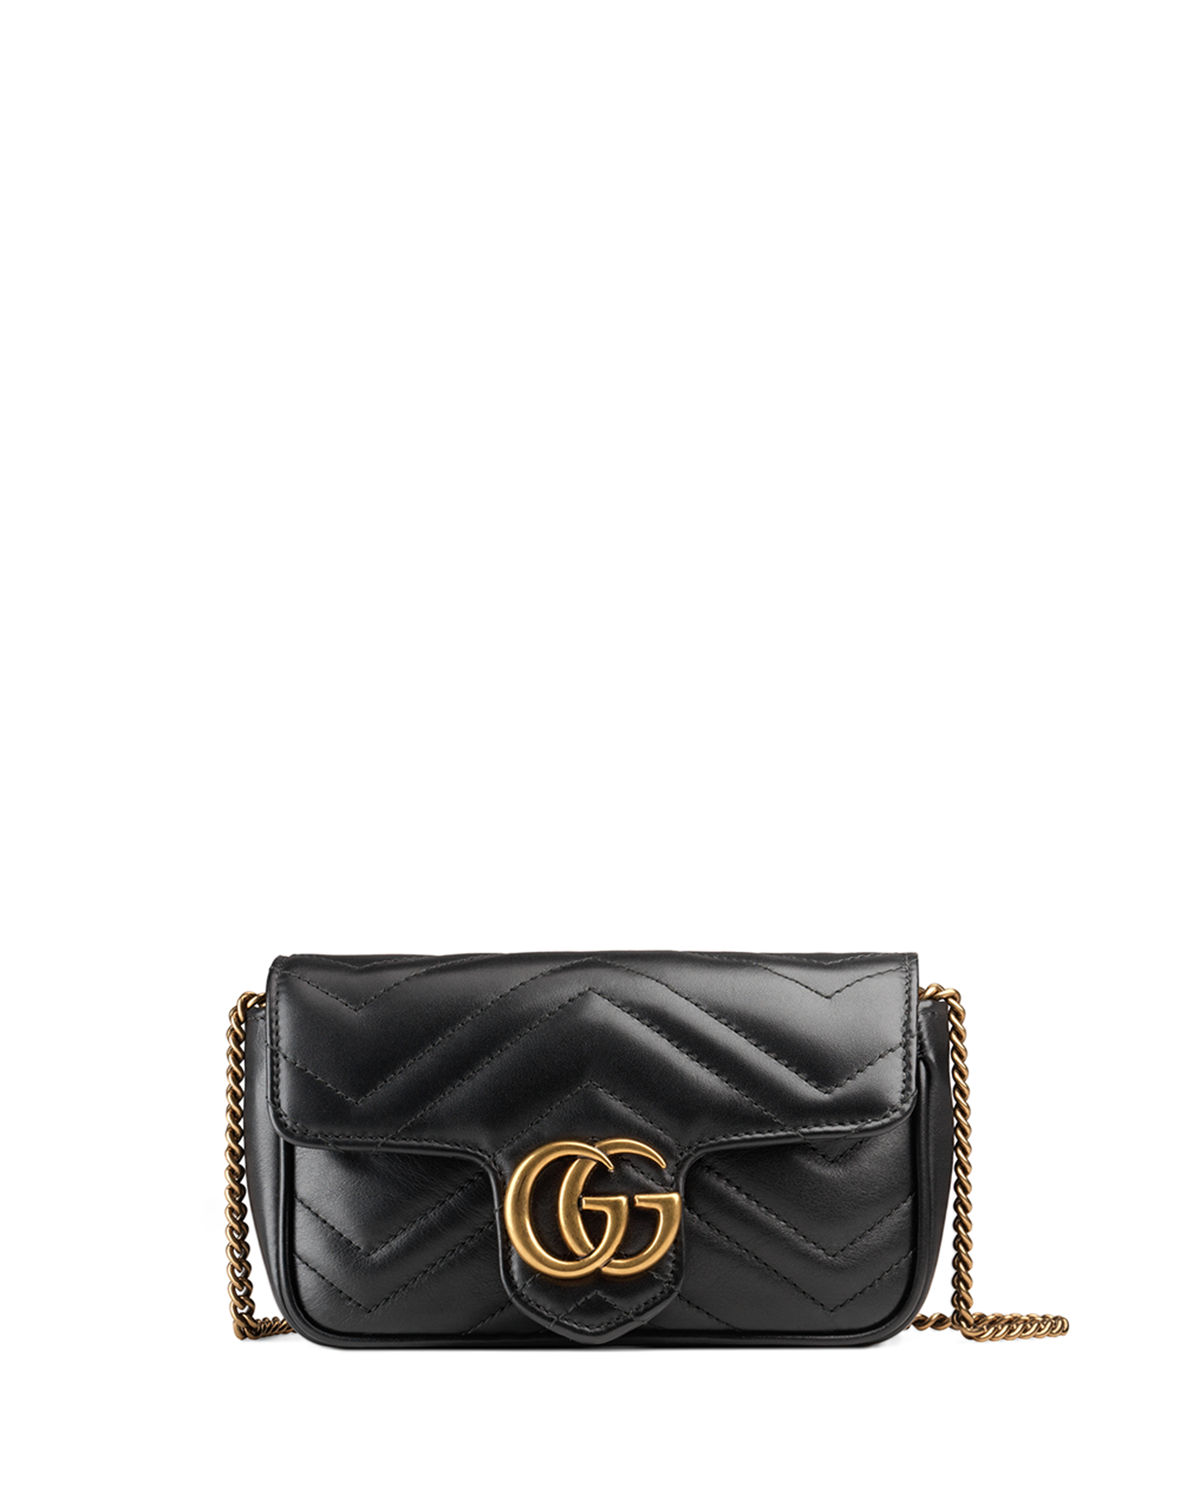 1630a2cbf5d3d5 Gucci GG Marmont Matelasse Leather Super Mini Bag | Neiman Marcus